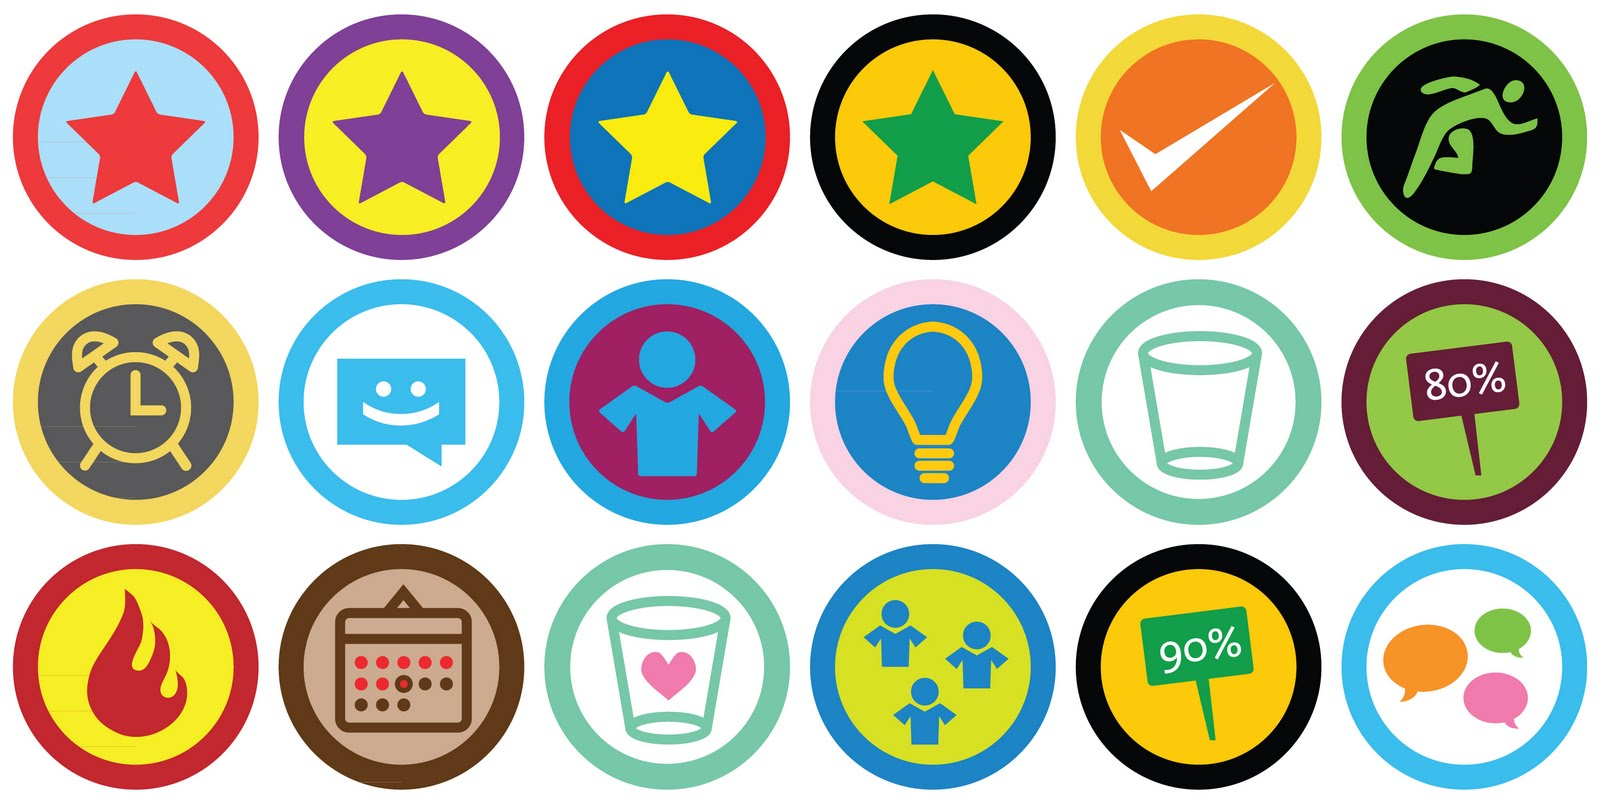 /wp-content/uploads/2013/05/gamification_badges_223675.jpg